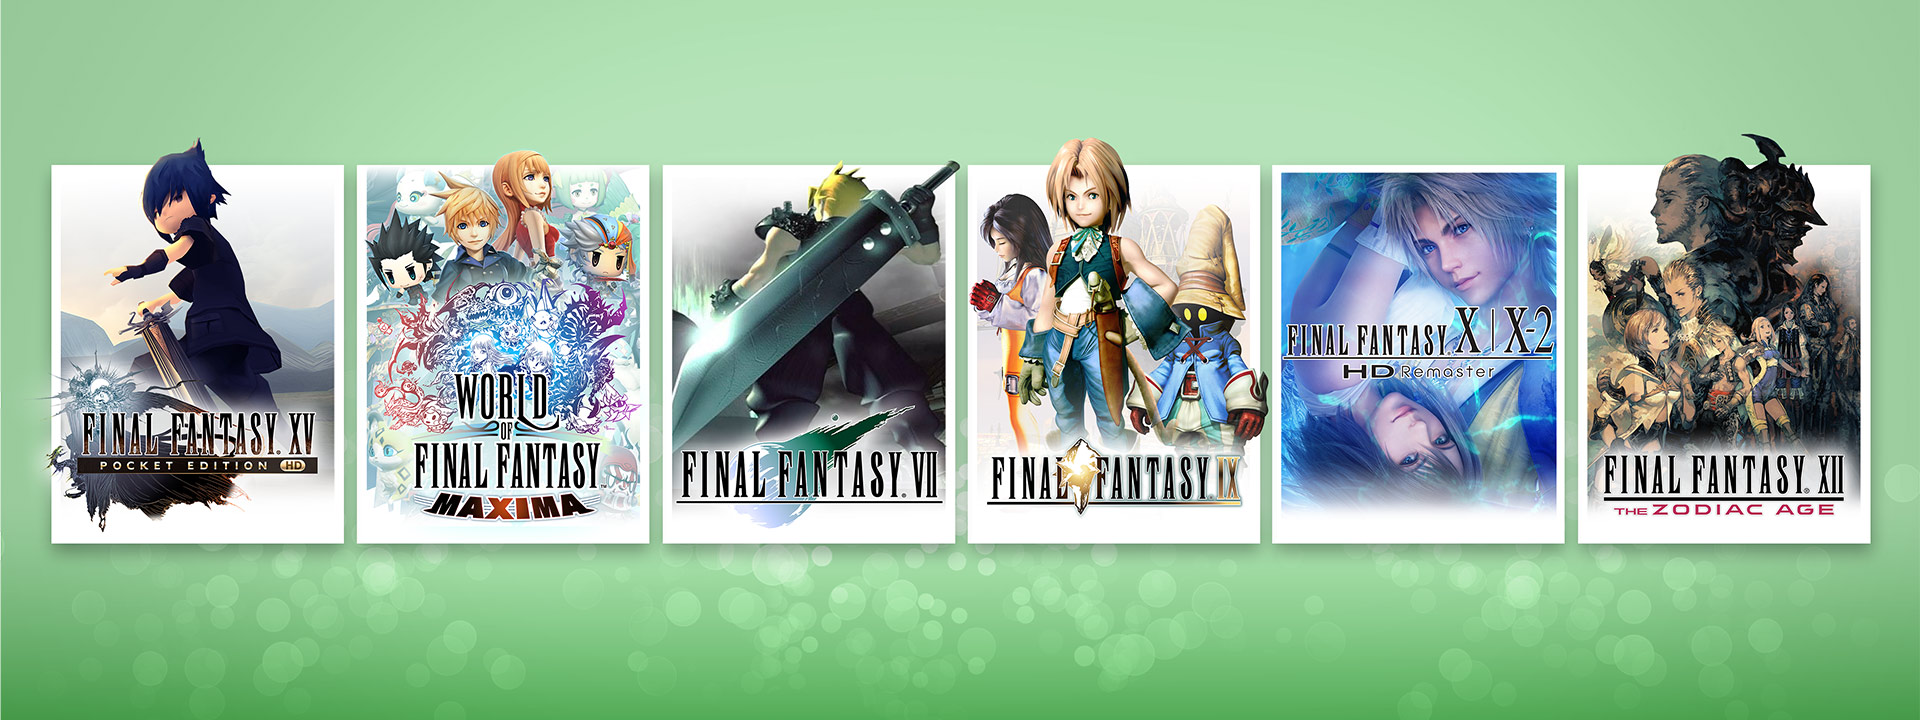 Imágenes de las cajas de FINAL FANTASY XV POCKET EDITION HD, WORLD OF FINAL FANTASY MAXIMA, FINAL FANTASY VII, FINAL FANTASY IX, FINAL FANTASY X | X-2 HD Remaster y FINAL FANTASY XII THE ZODIAC AGE